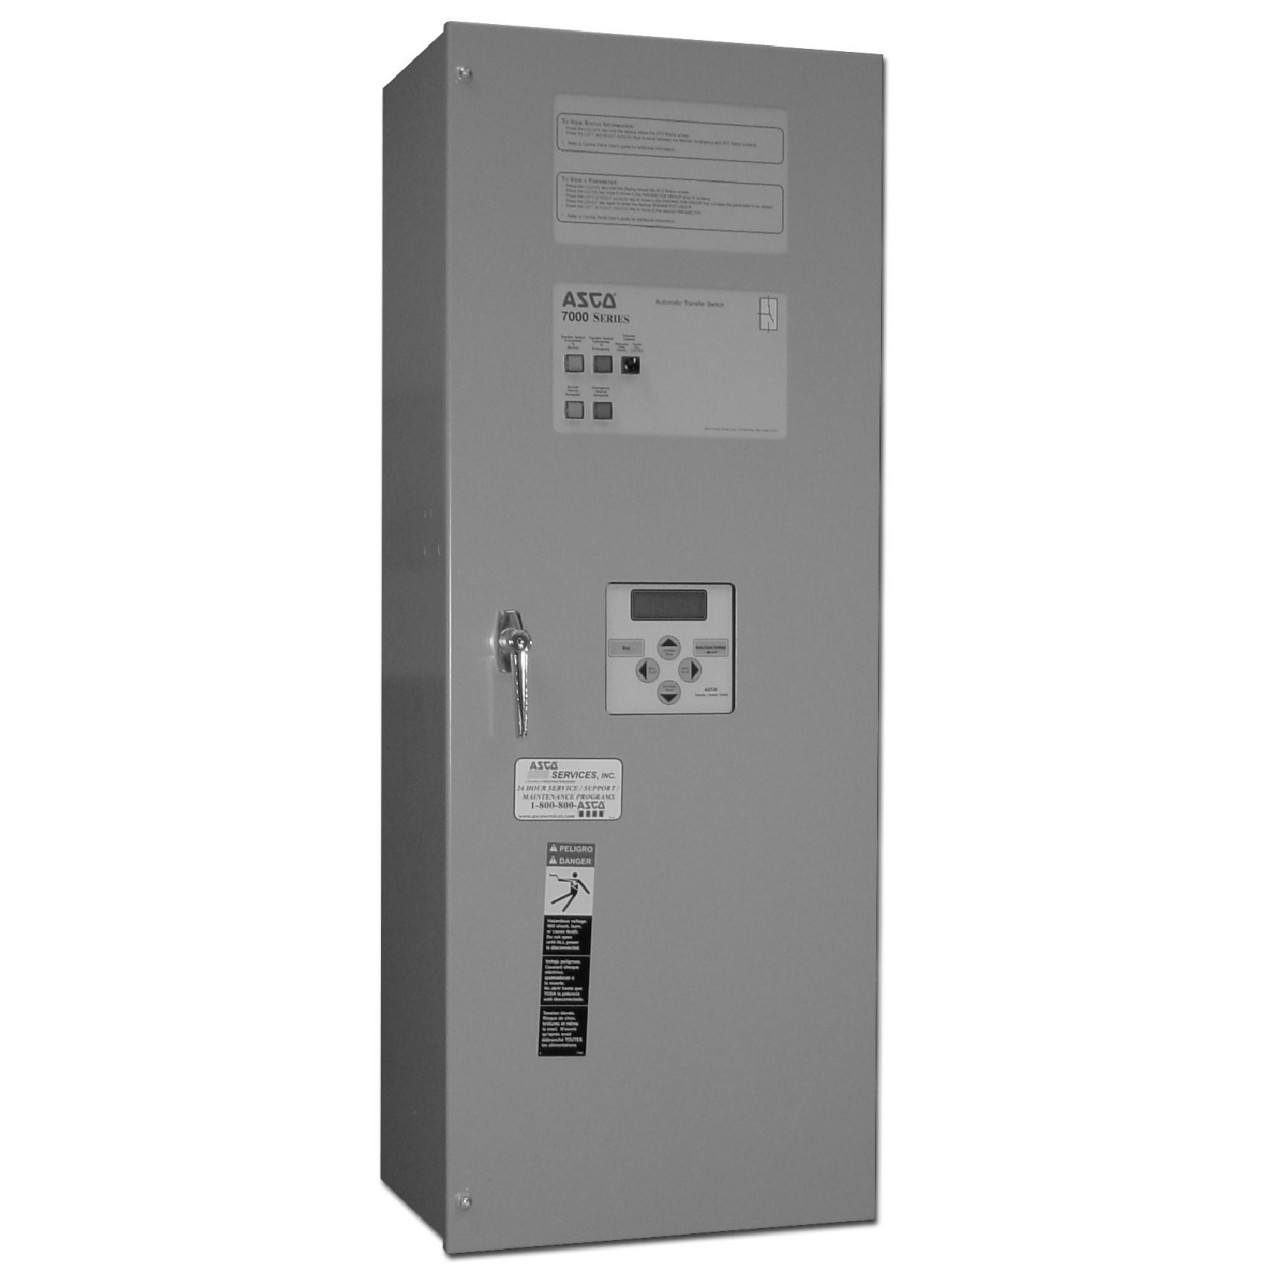 Asco 7000 Manual Transfer Switch (3Ph, 100A)